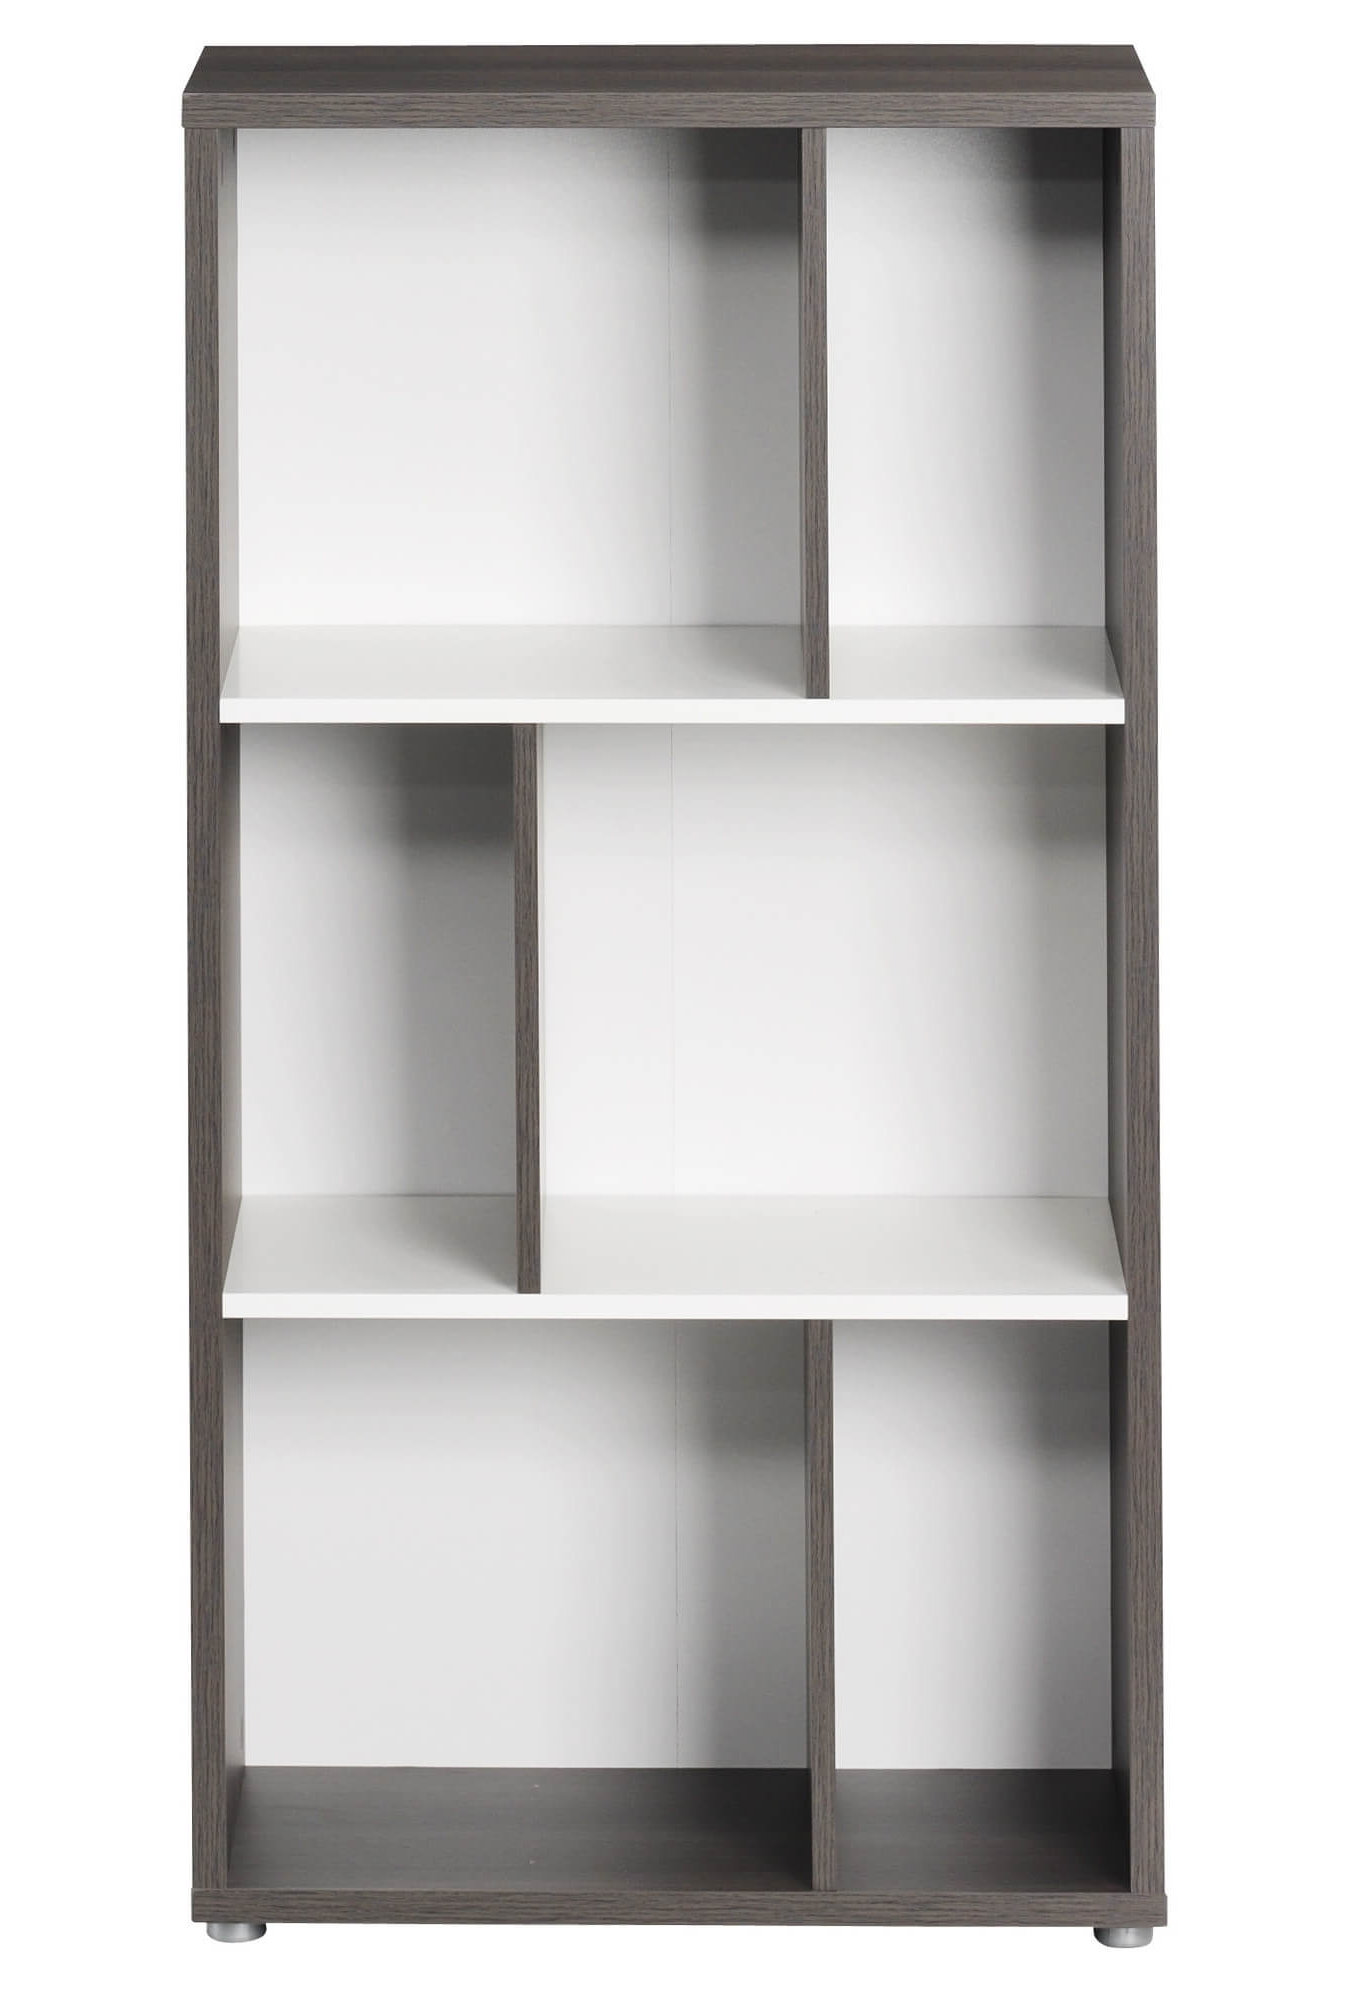 Cube Bookcases With Fashionable 15 6 Cube Bookcases, Shelves And Storage Options (View 6 of 15)